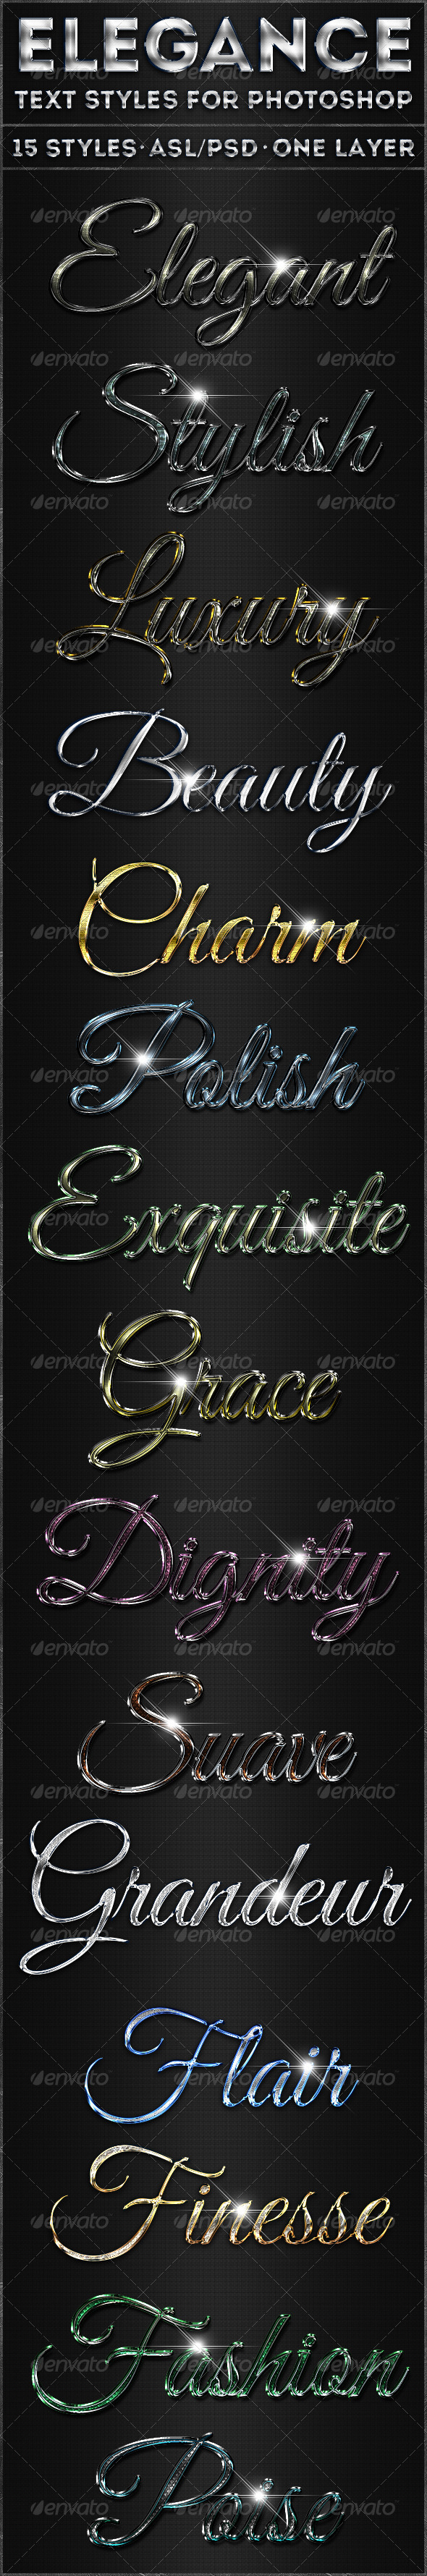 GraphicRiver Elegance Text Styles 5304529